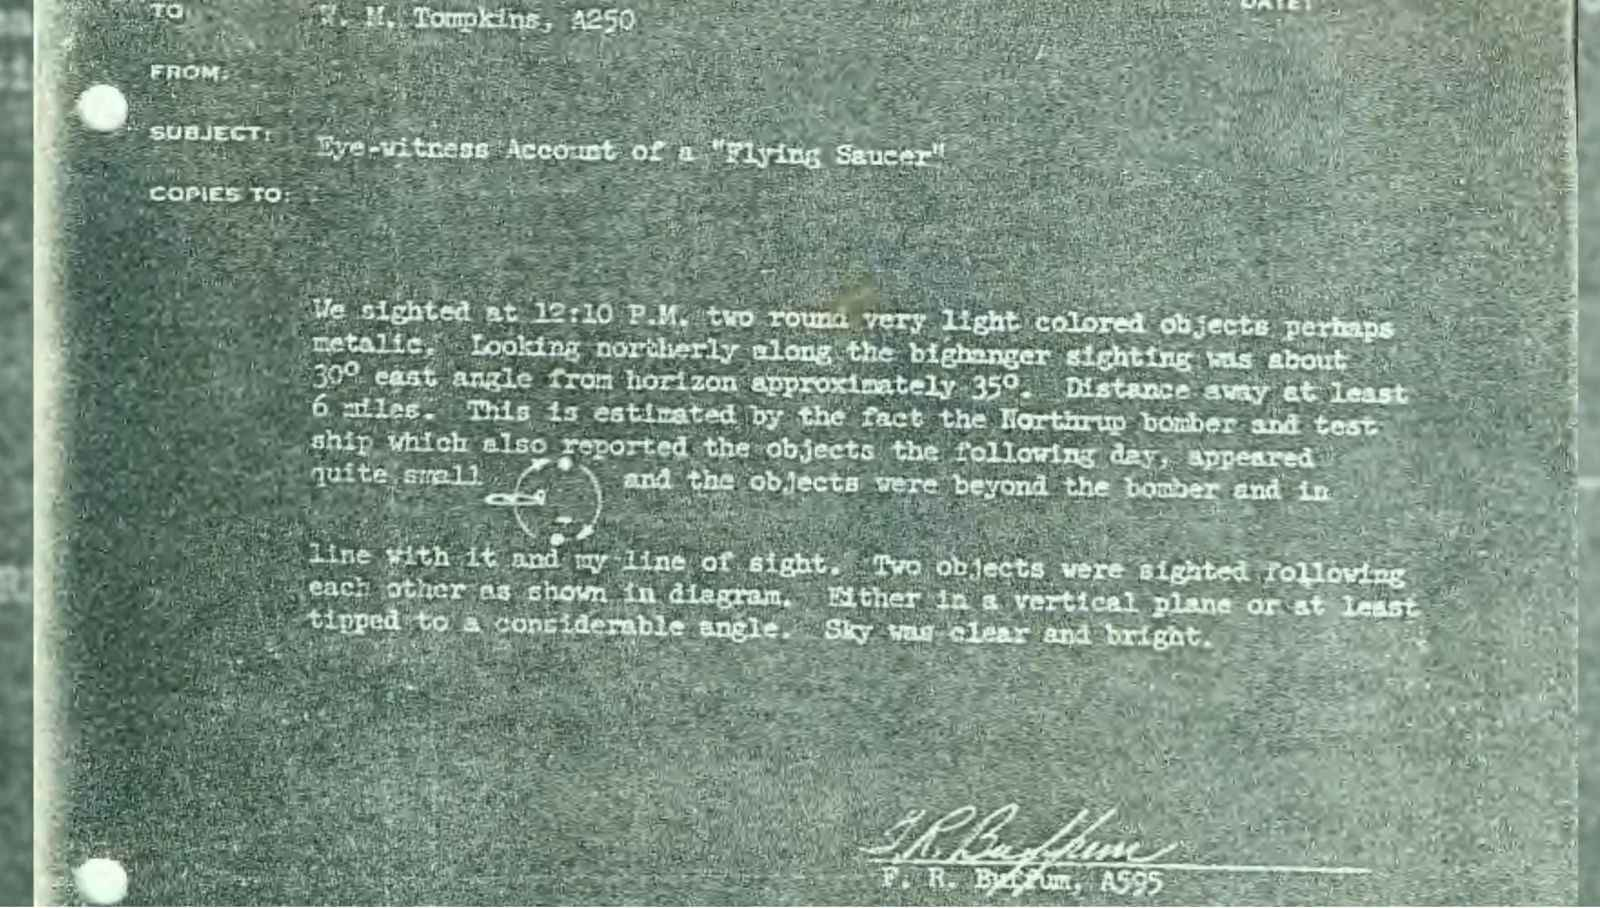 16_memo_eye_witness_account_of_a_flying_saucer